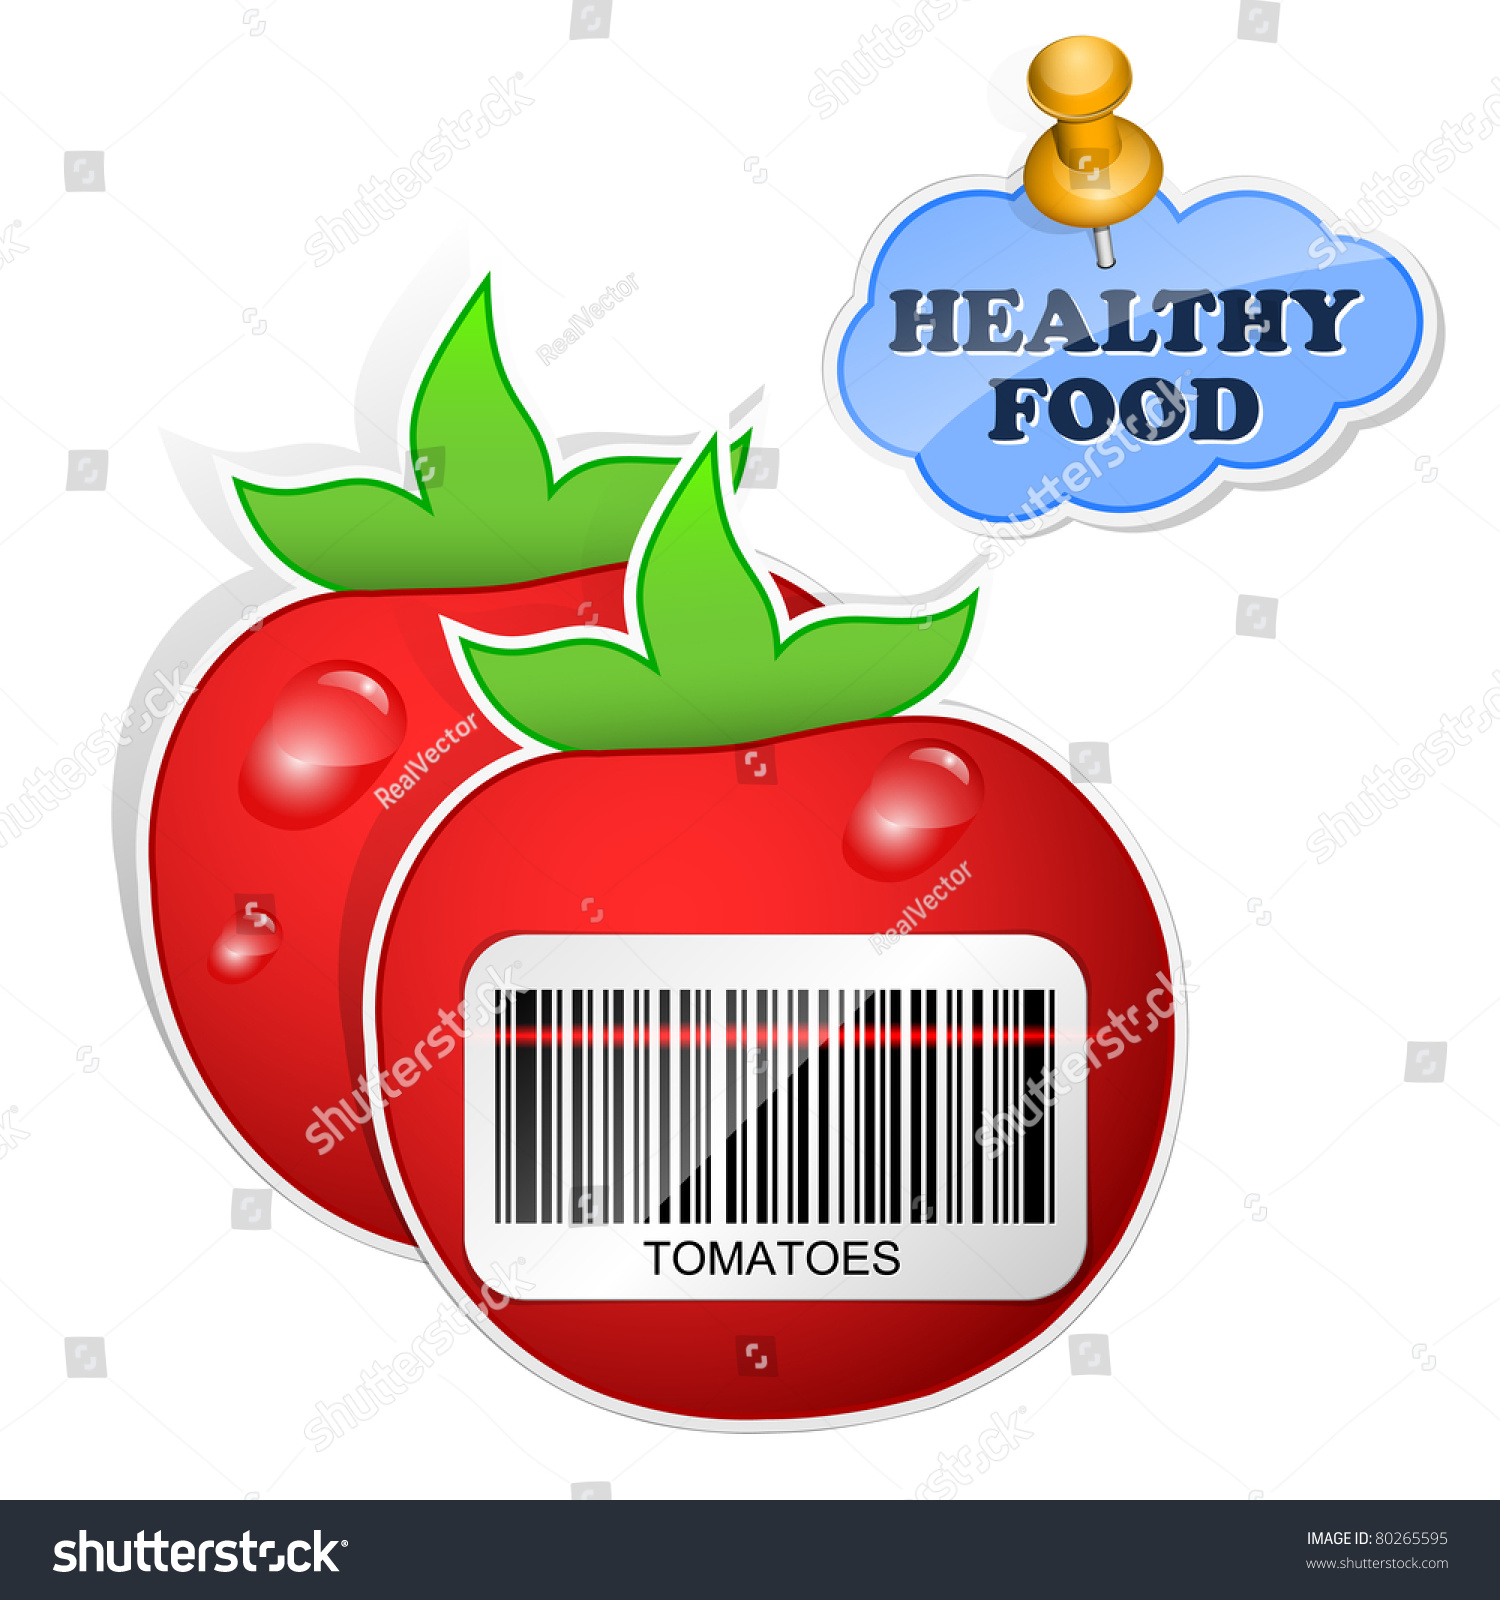 Icon tomatoes barcode by healthy food stock vector for Food barcode